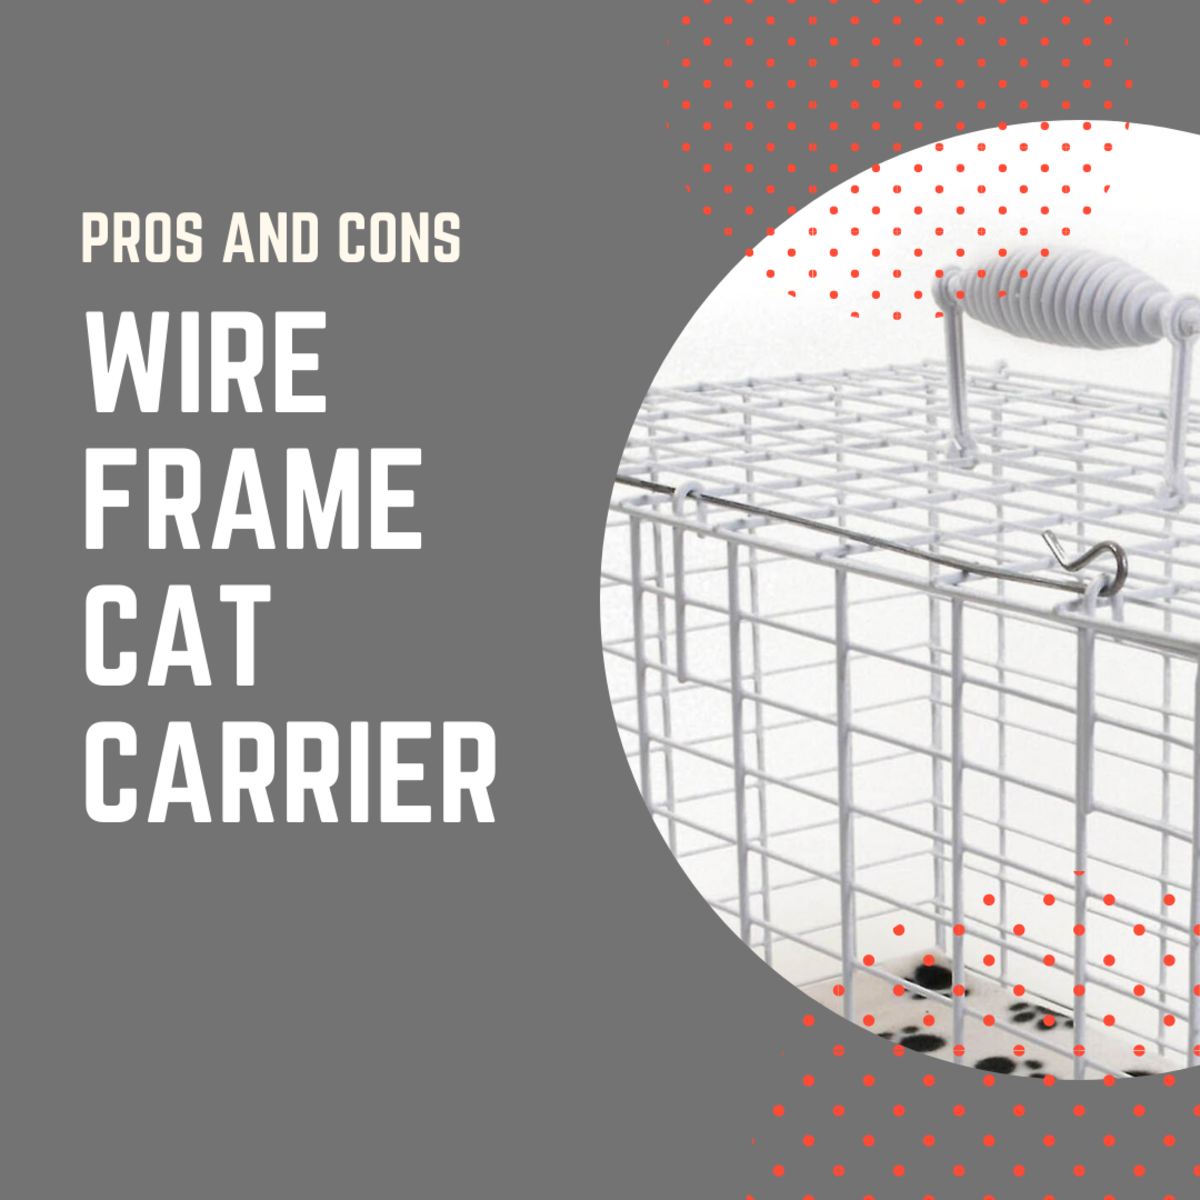 Pros and Cons of a Wire Frame Cat Carrier